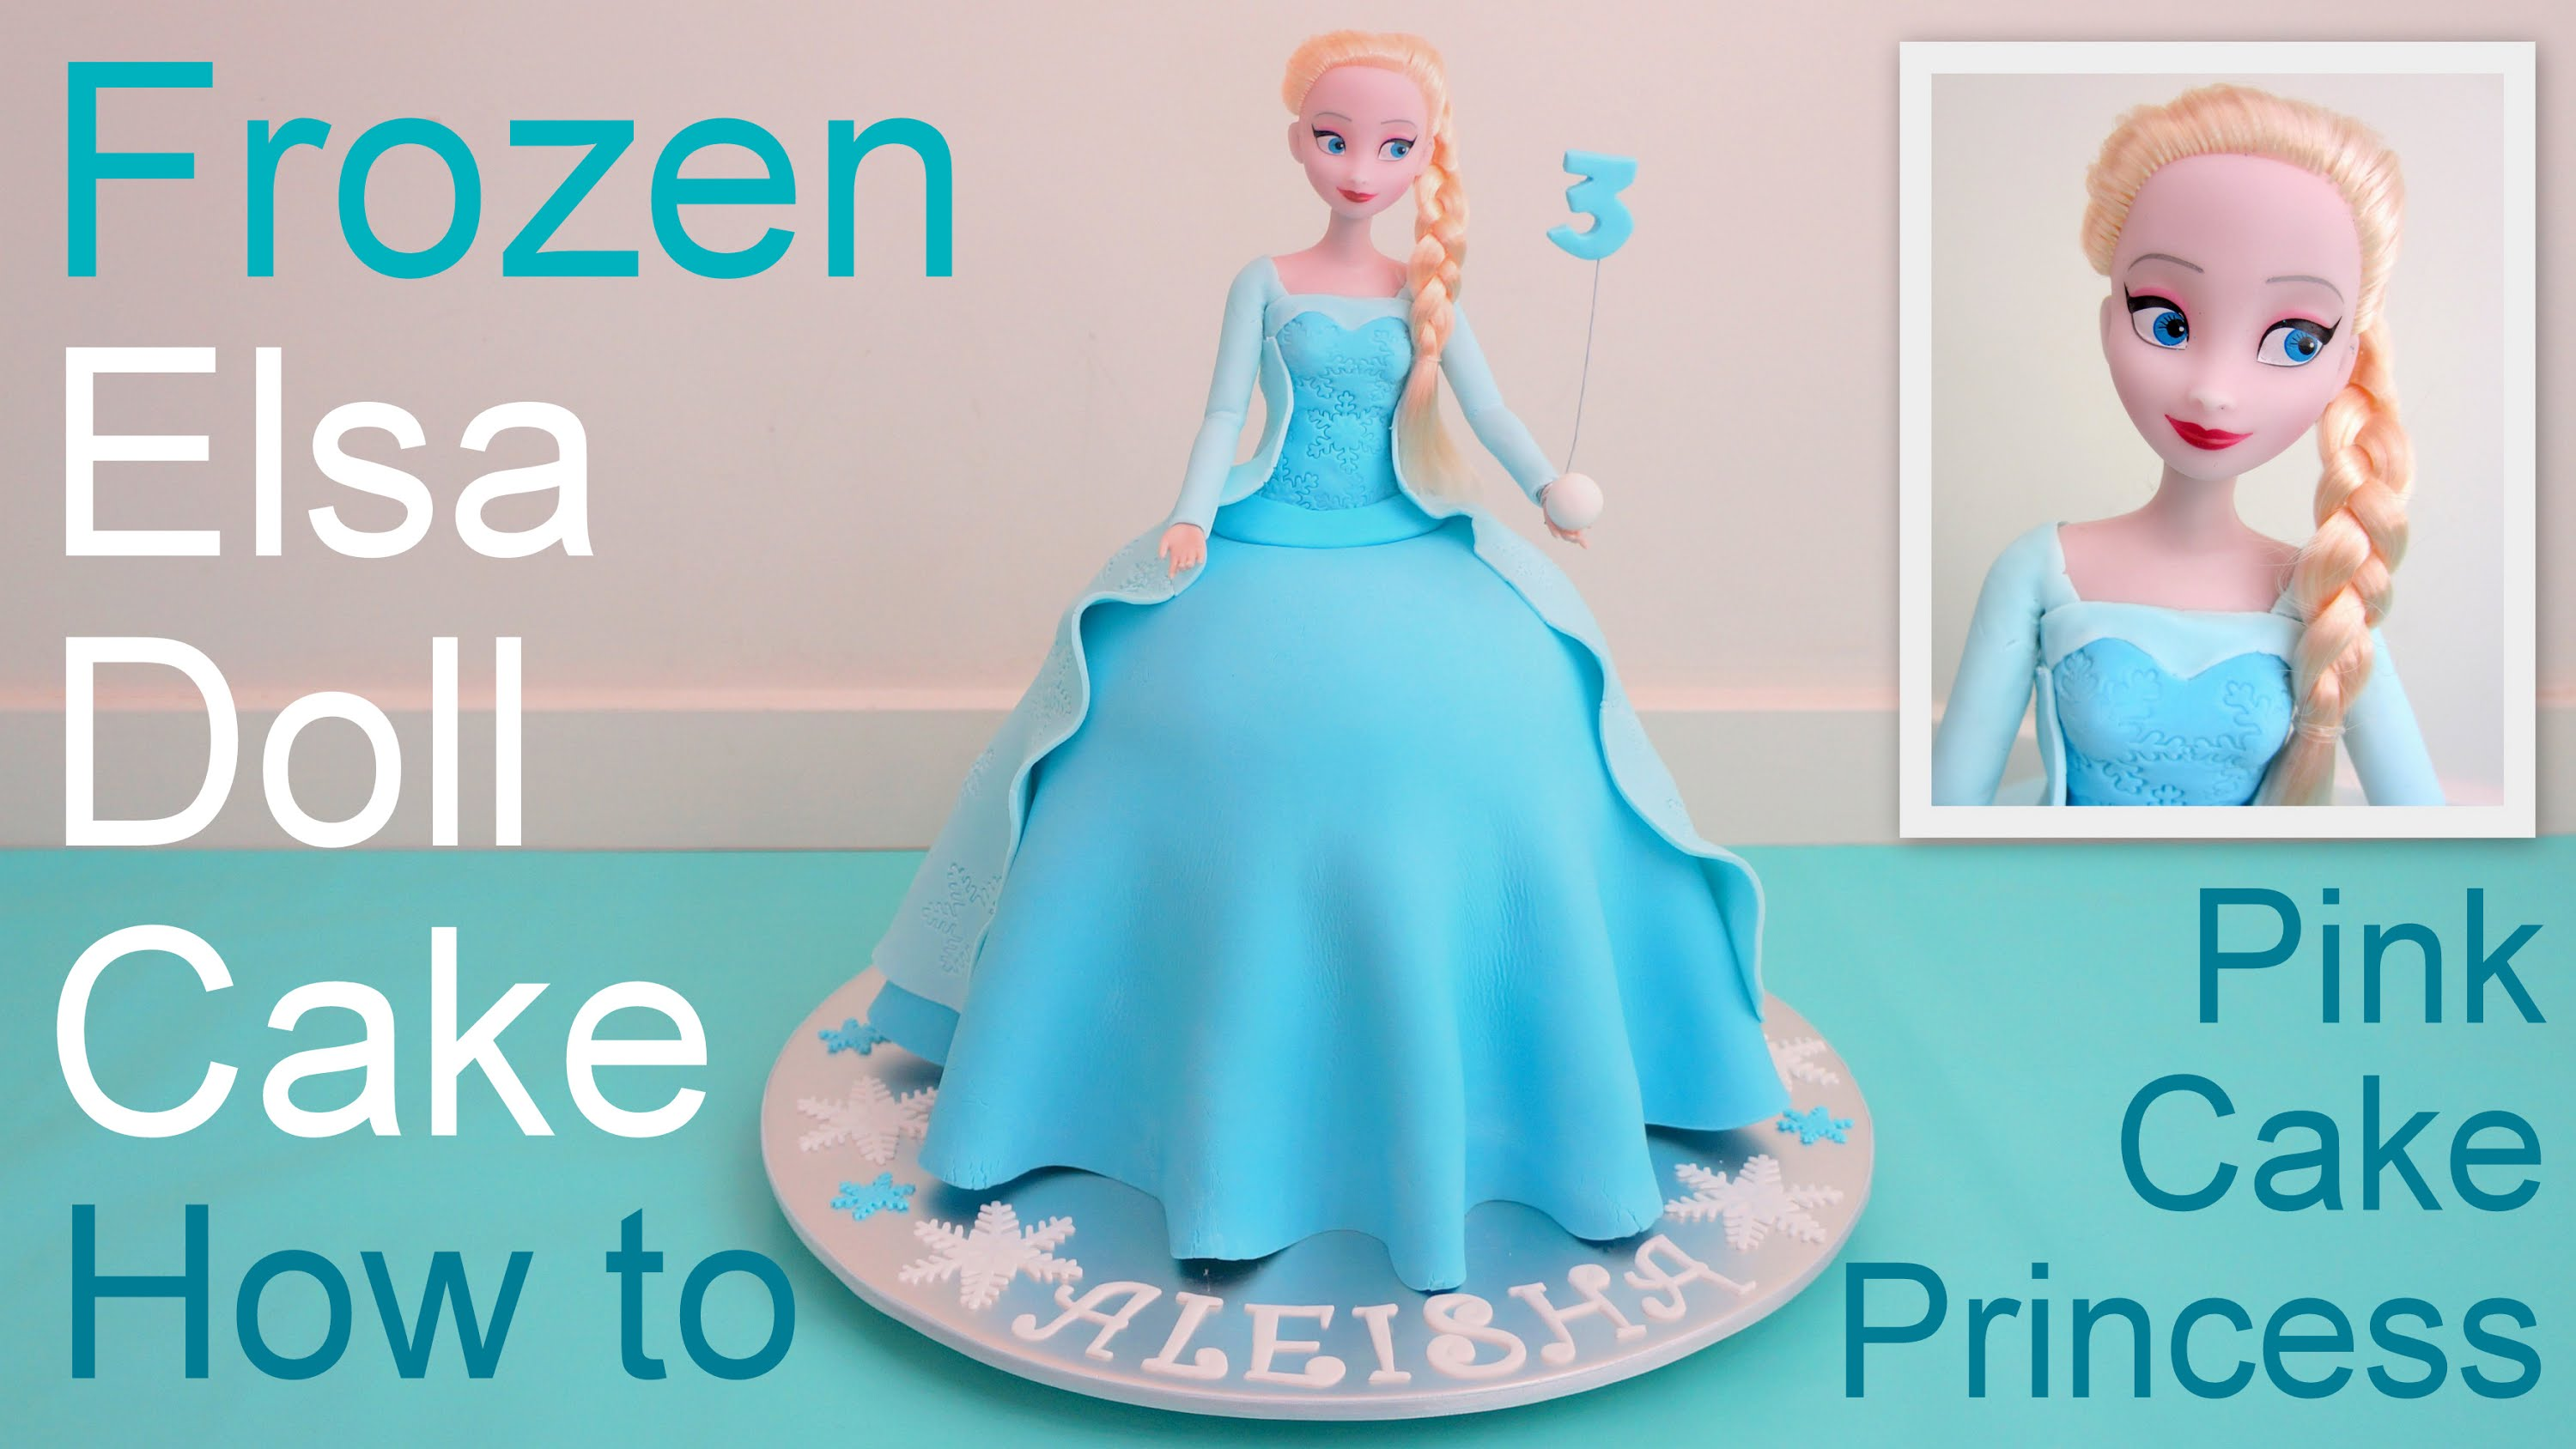 Frozen Cake – Elsa Doll Cake how to make by Pink Cake Princess